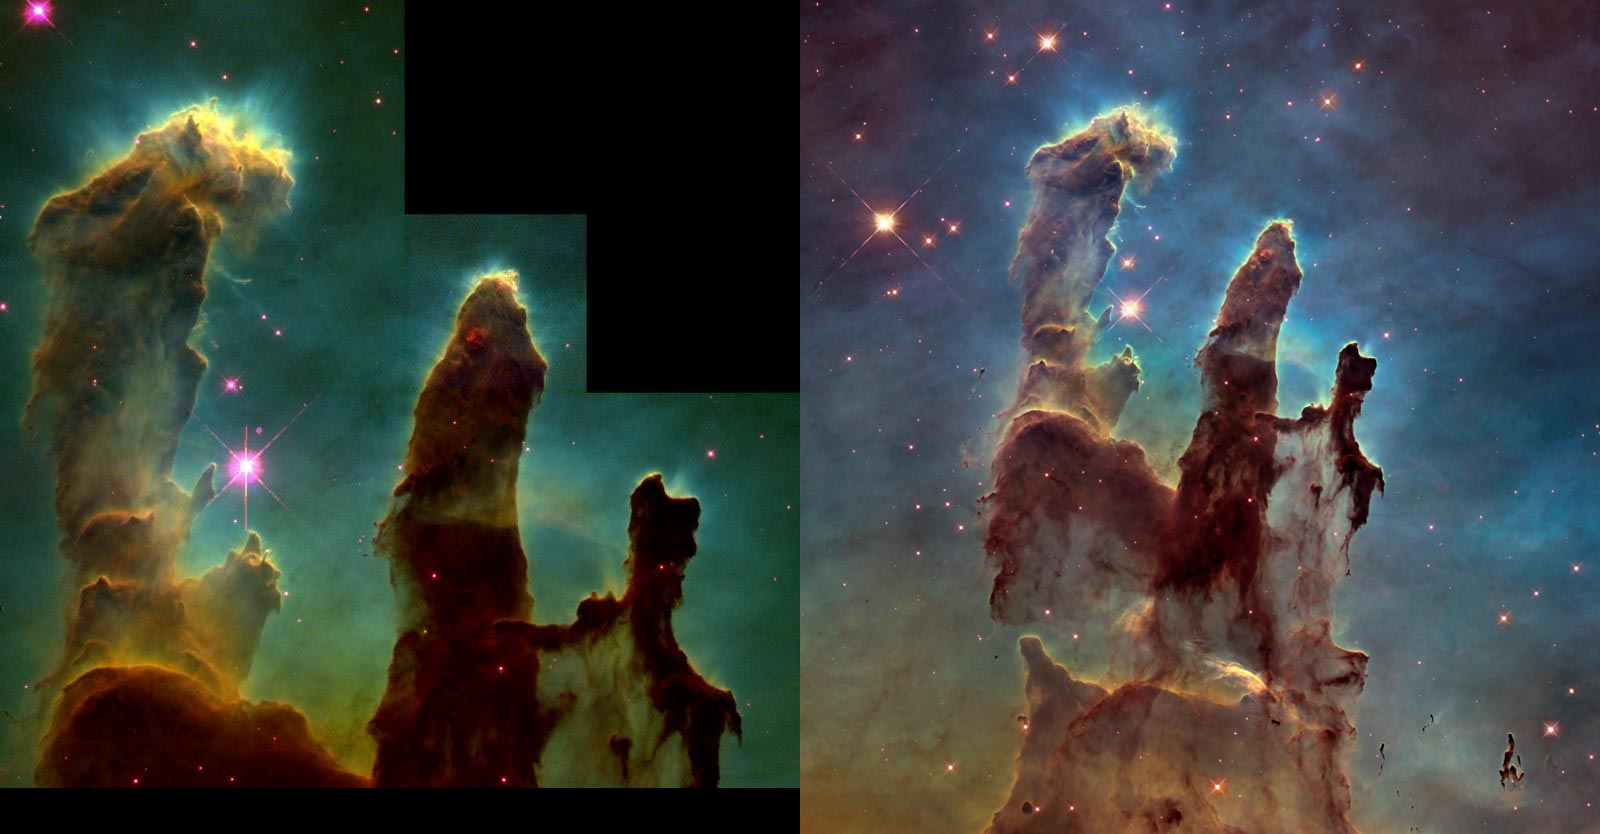 1995 and more recent Hubble images for comparison.